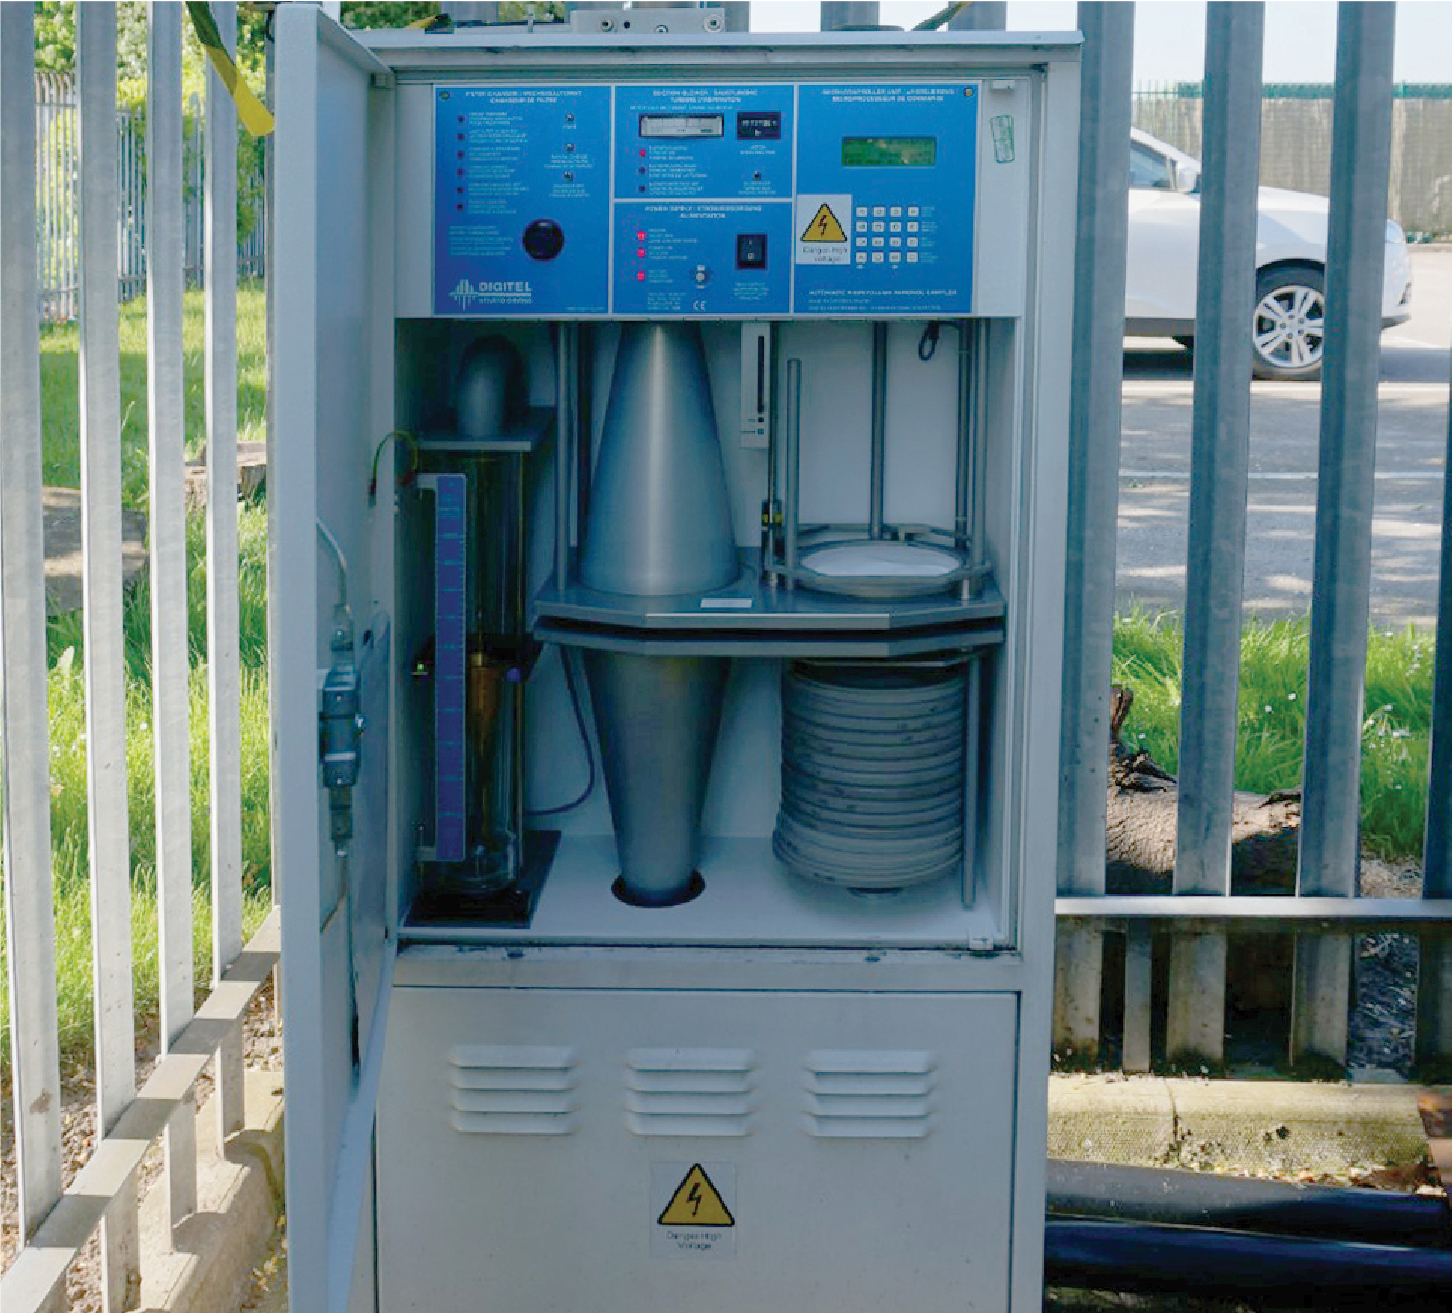 An air quality monitoring station in Liverpool